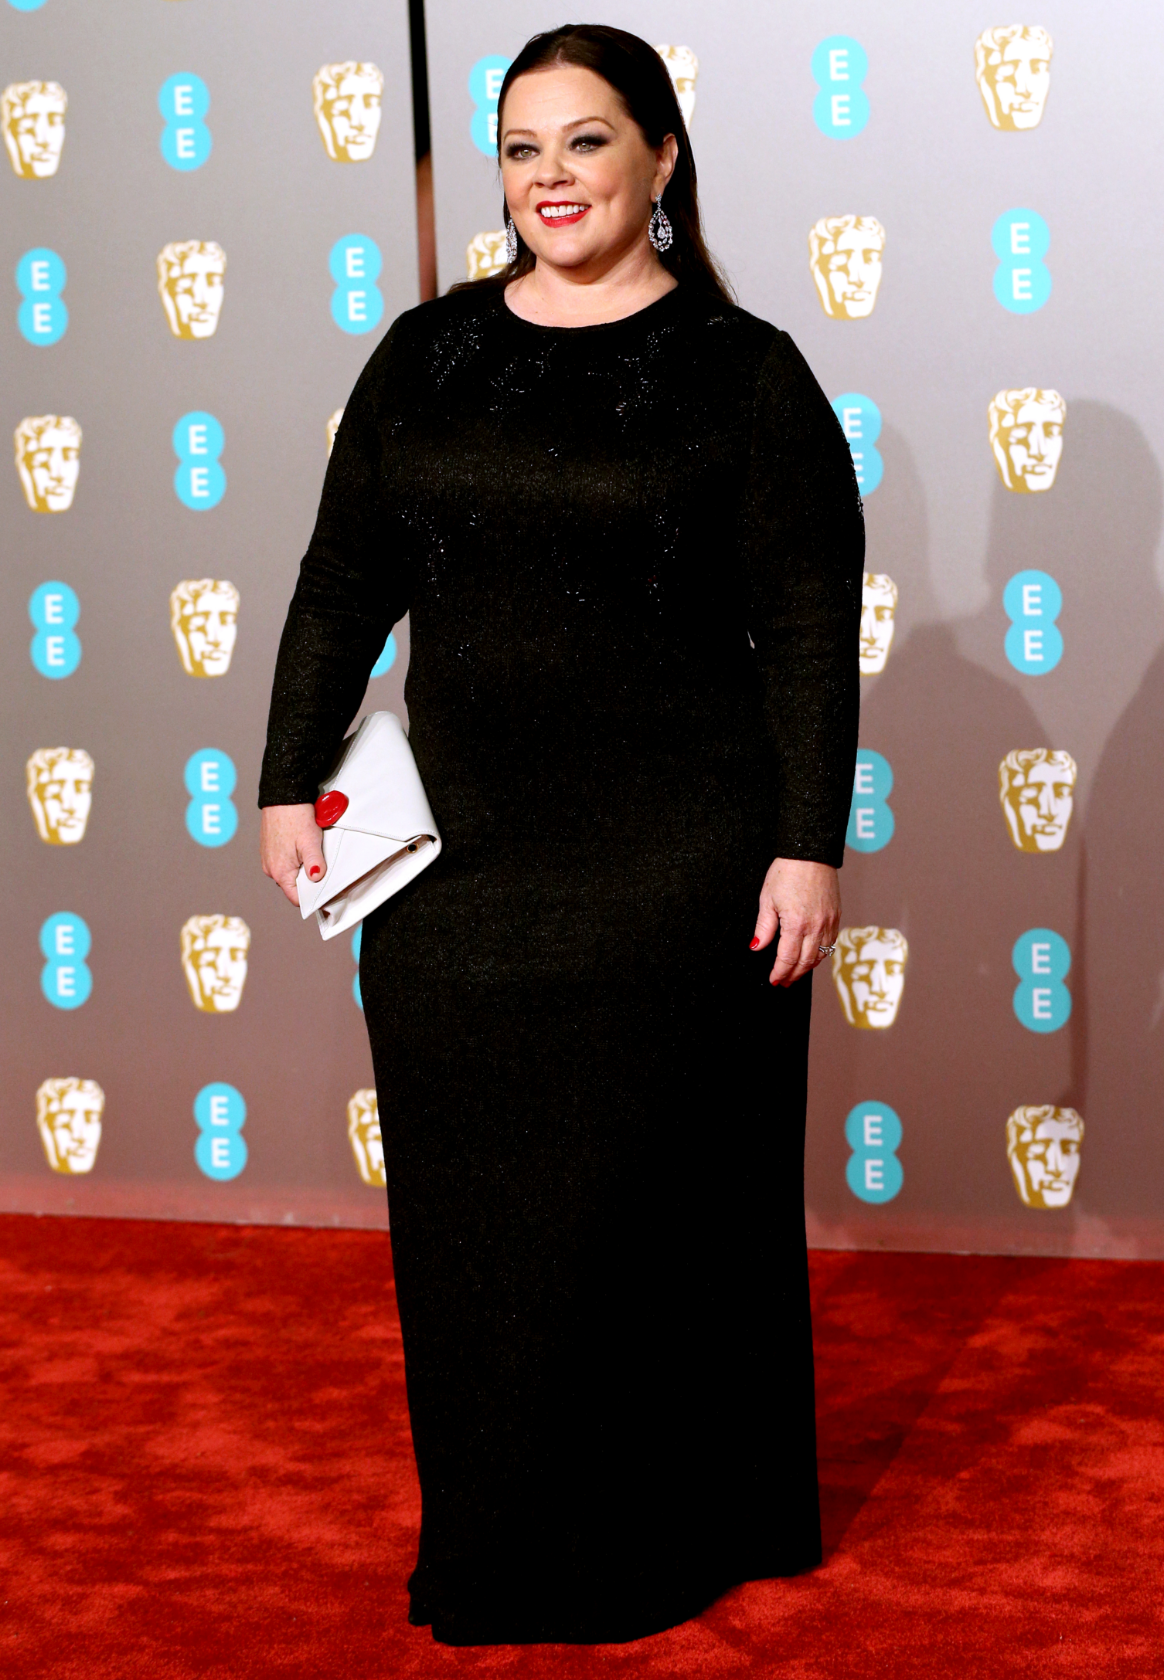 Melissa McCarthy wearing the Saint John Lace Overlay Jacquard Knit Gown